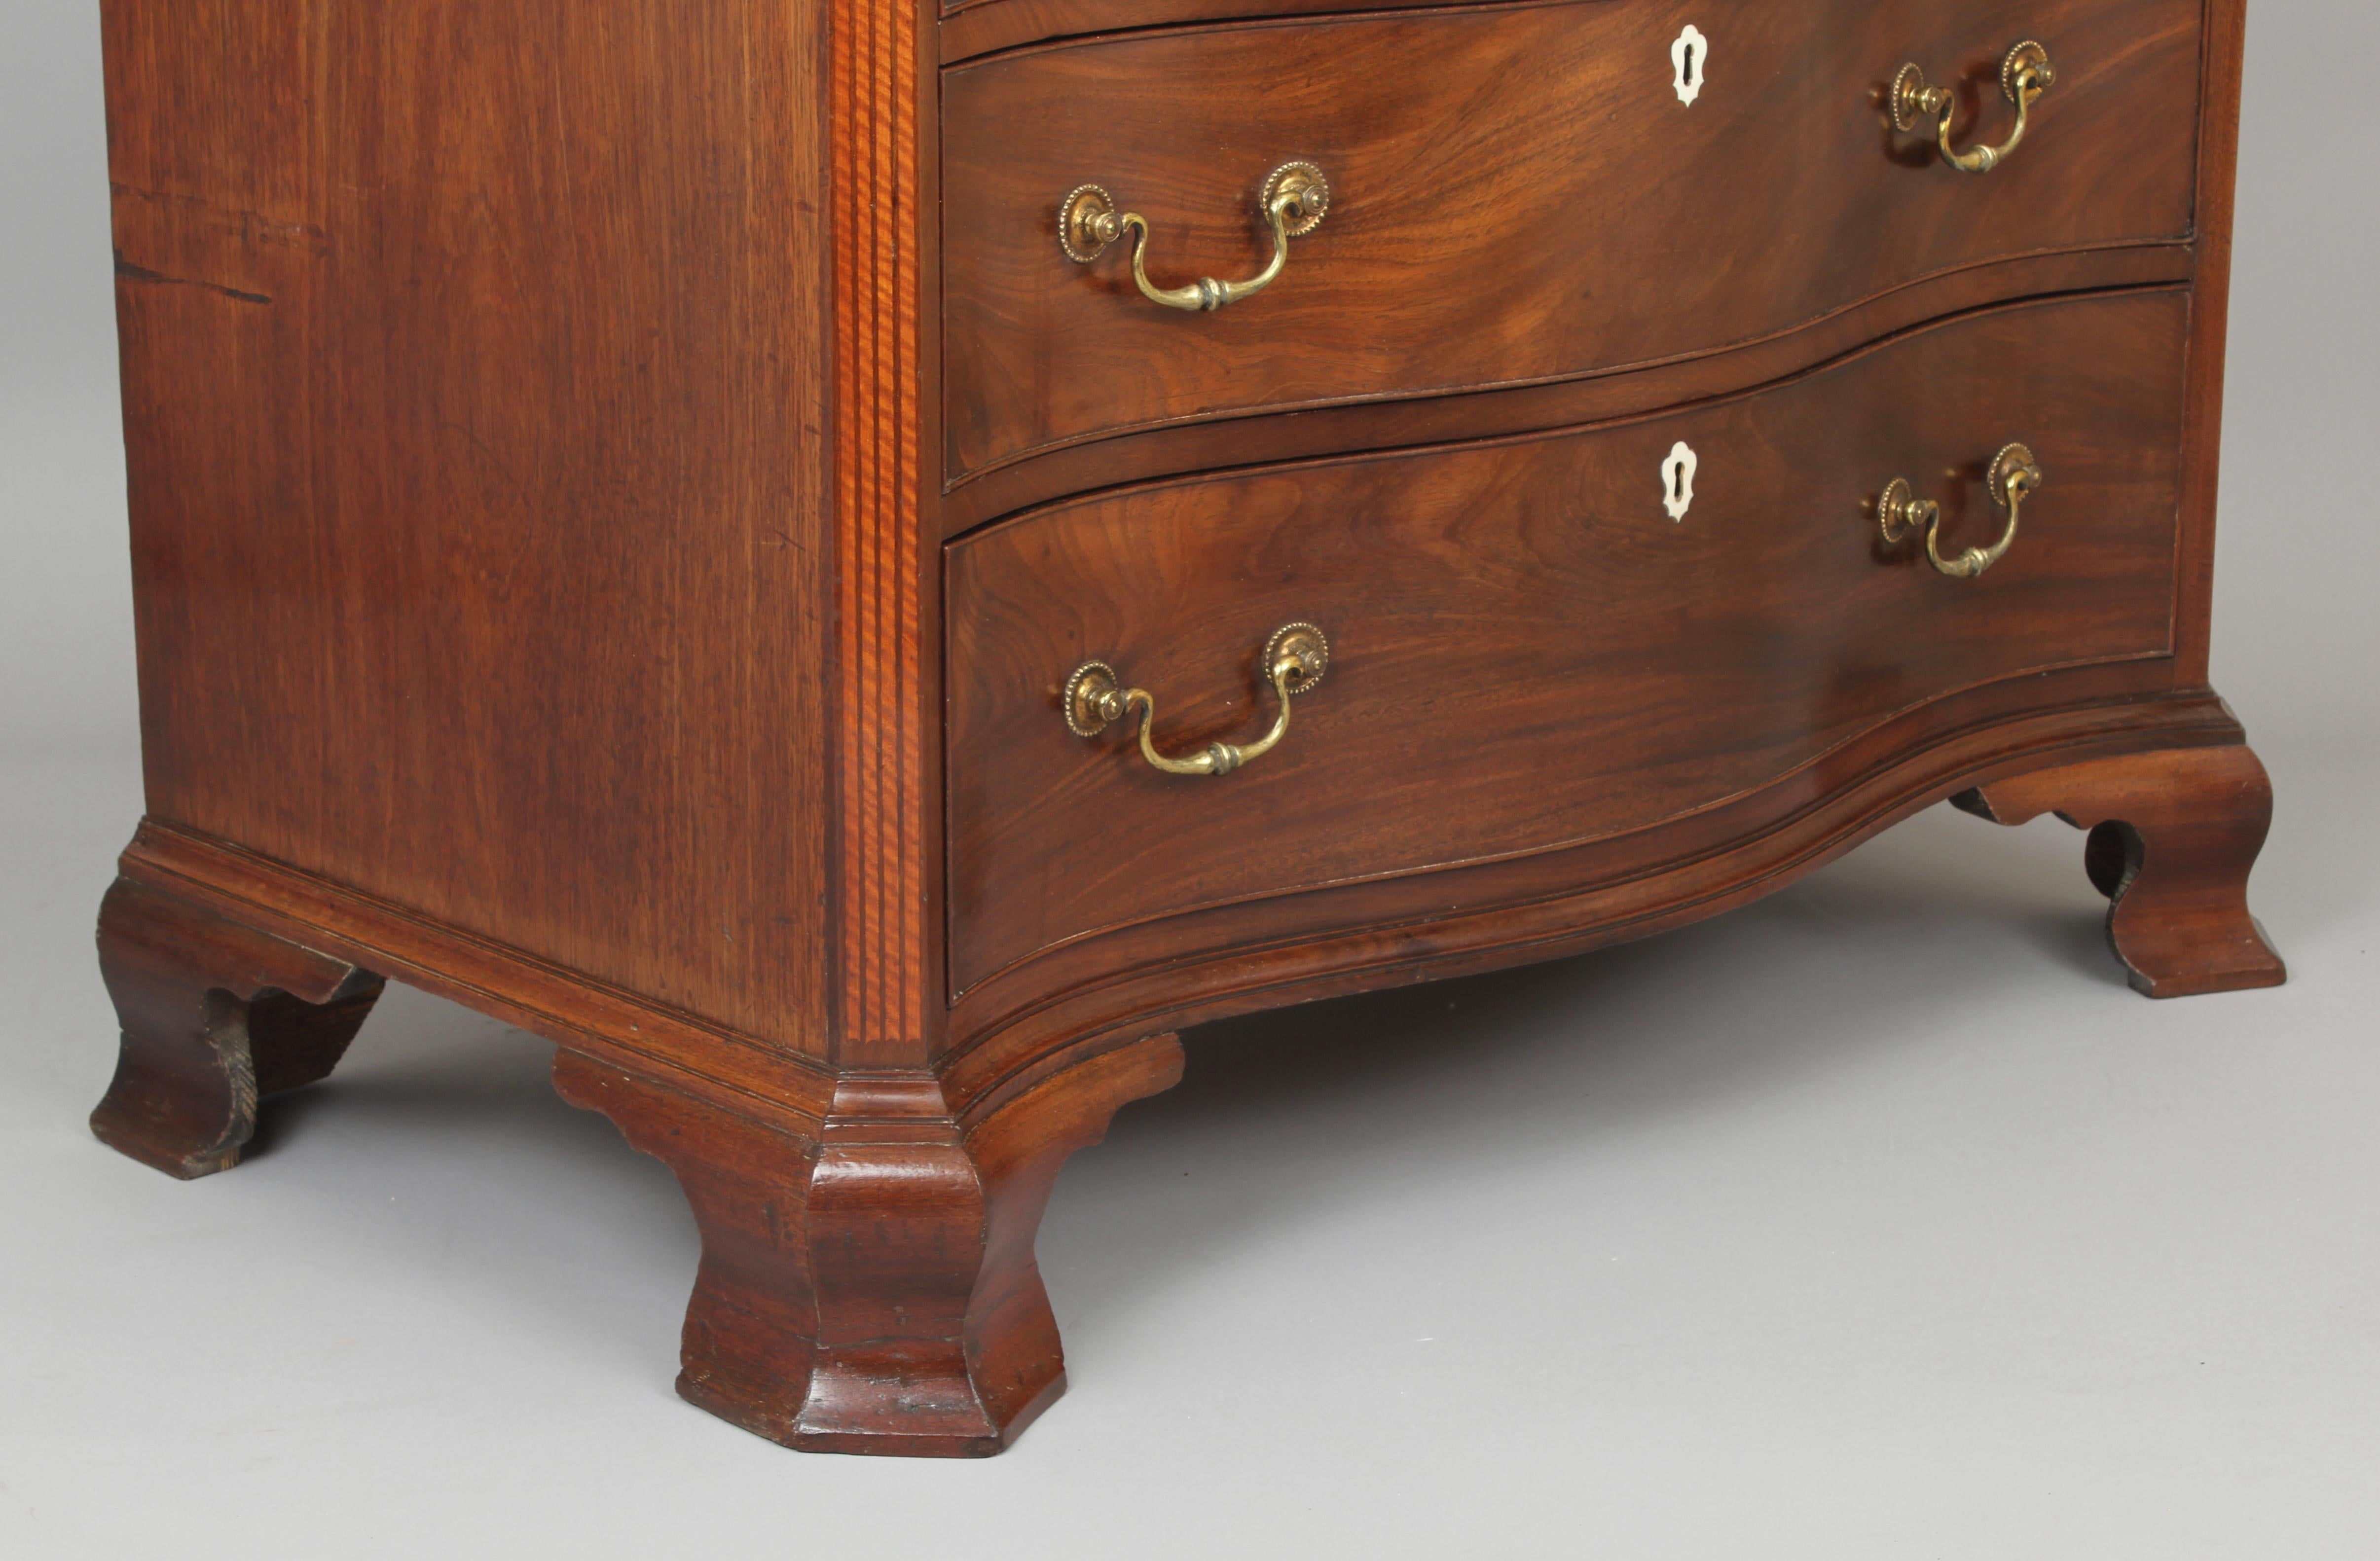 Fine George III Period Mahogany Serpentine Dressing-Chest of Small Proportions